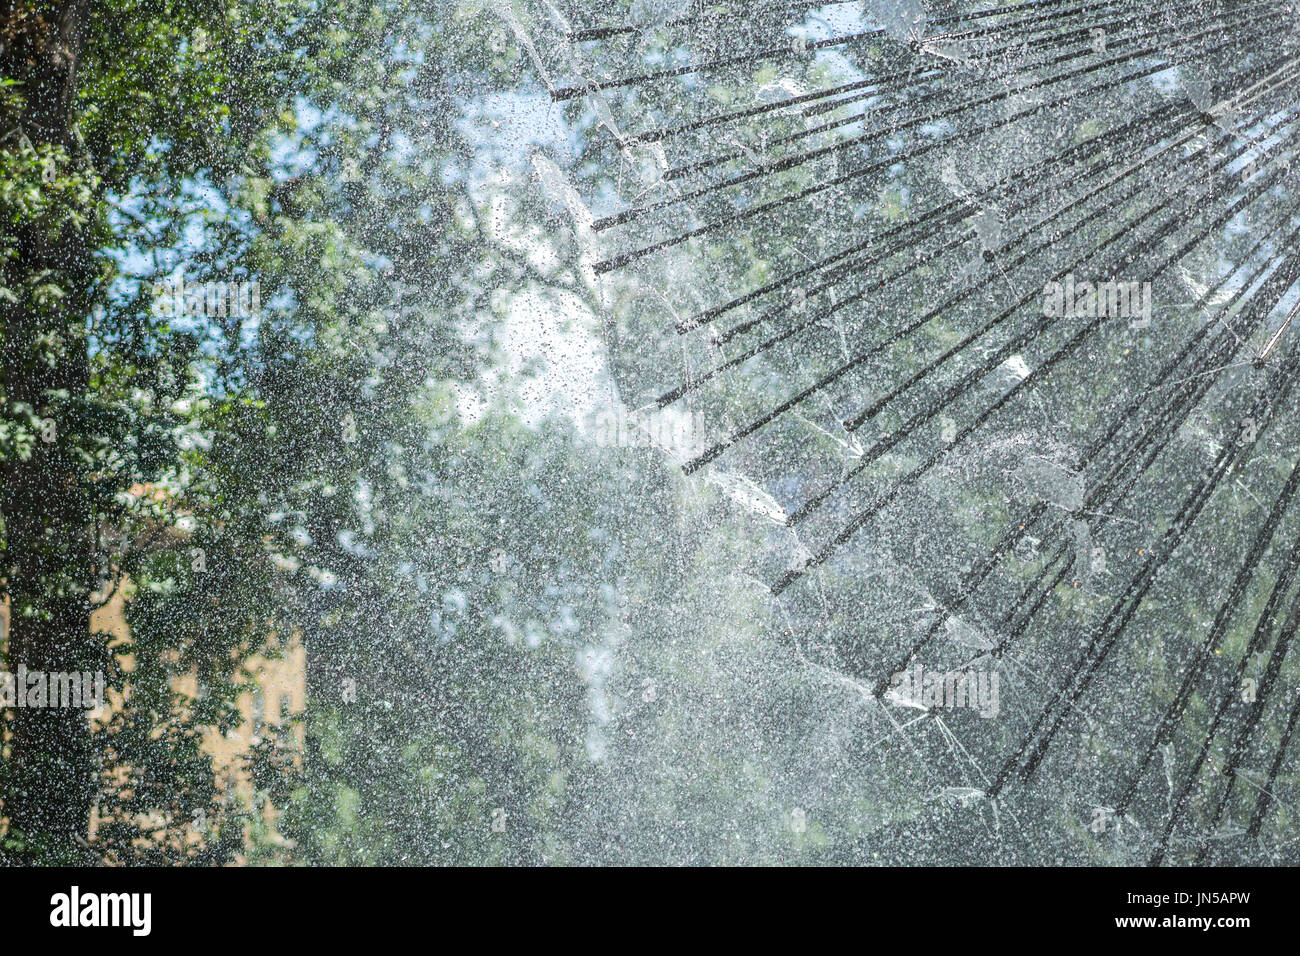 Dandelion water installation at the park. - Stock Image